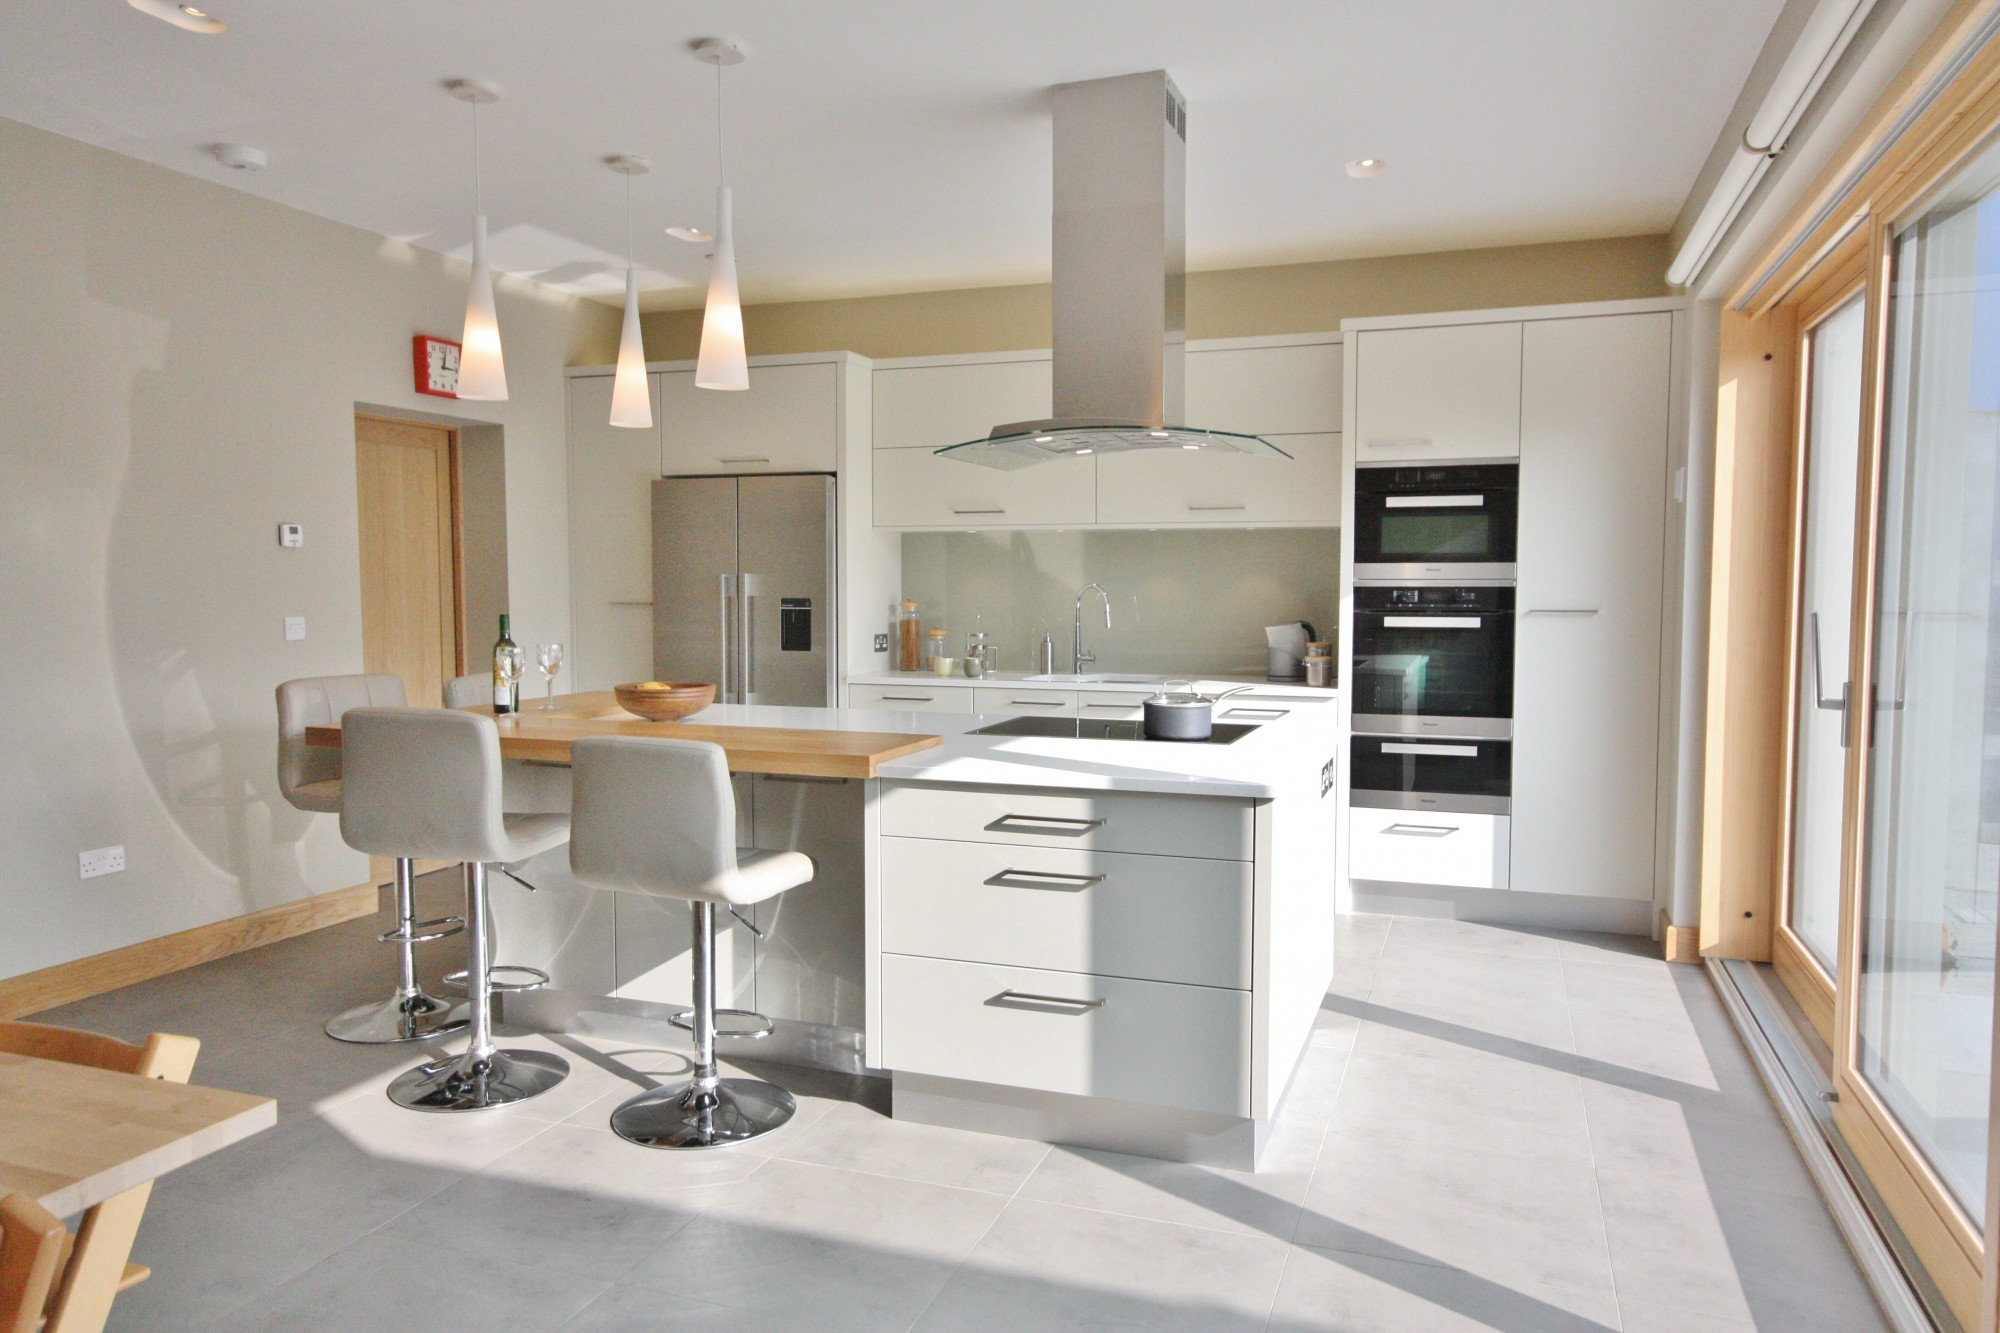 kitchen design wicklow enigma design 187 modern flat panel kitchen bespoke enigma 429